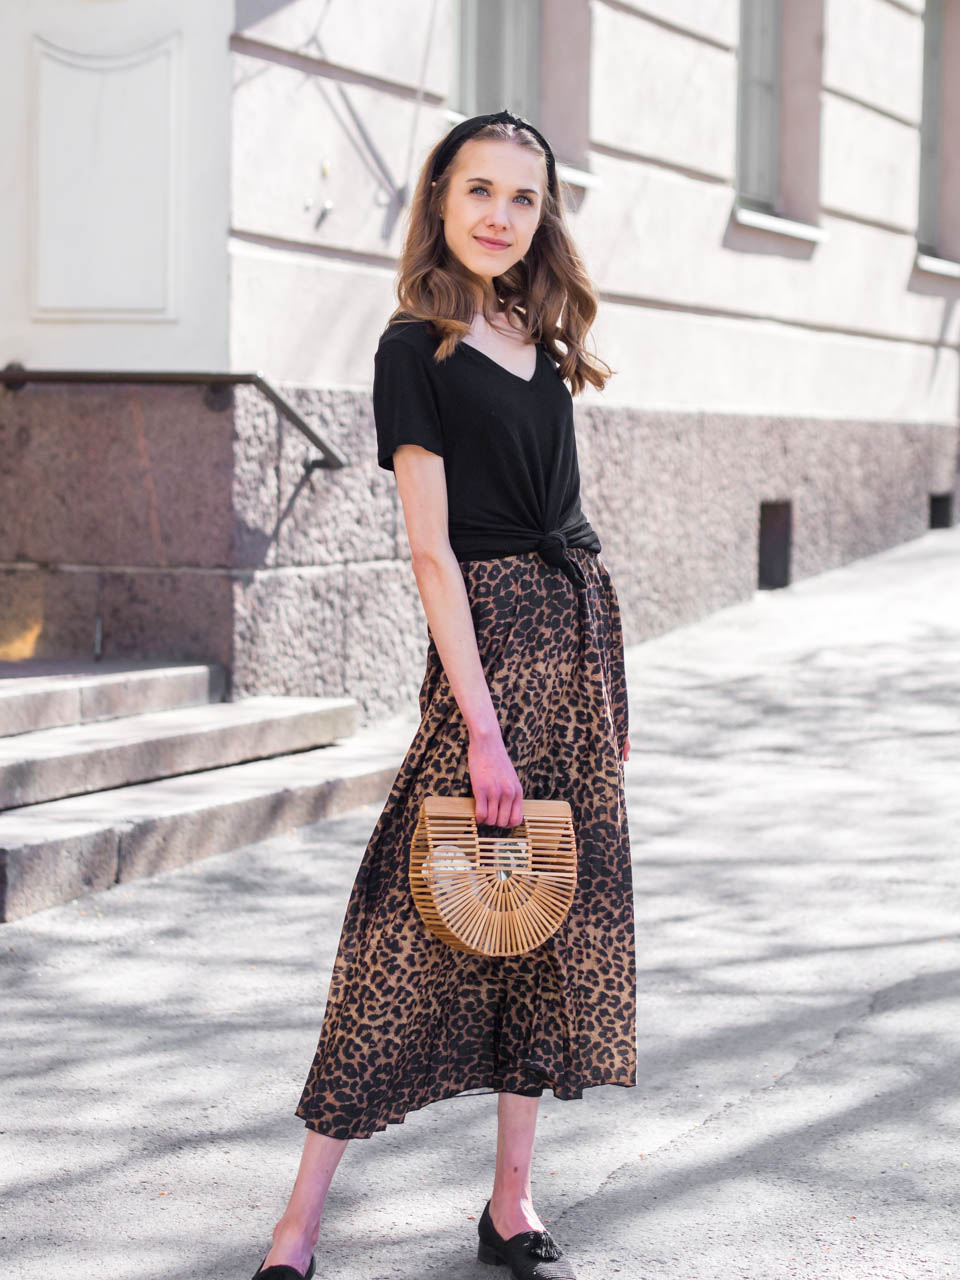 fashion-blogger-outfit-leopard-midi-skirt